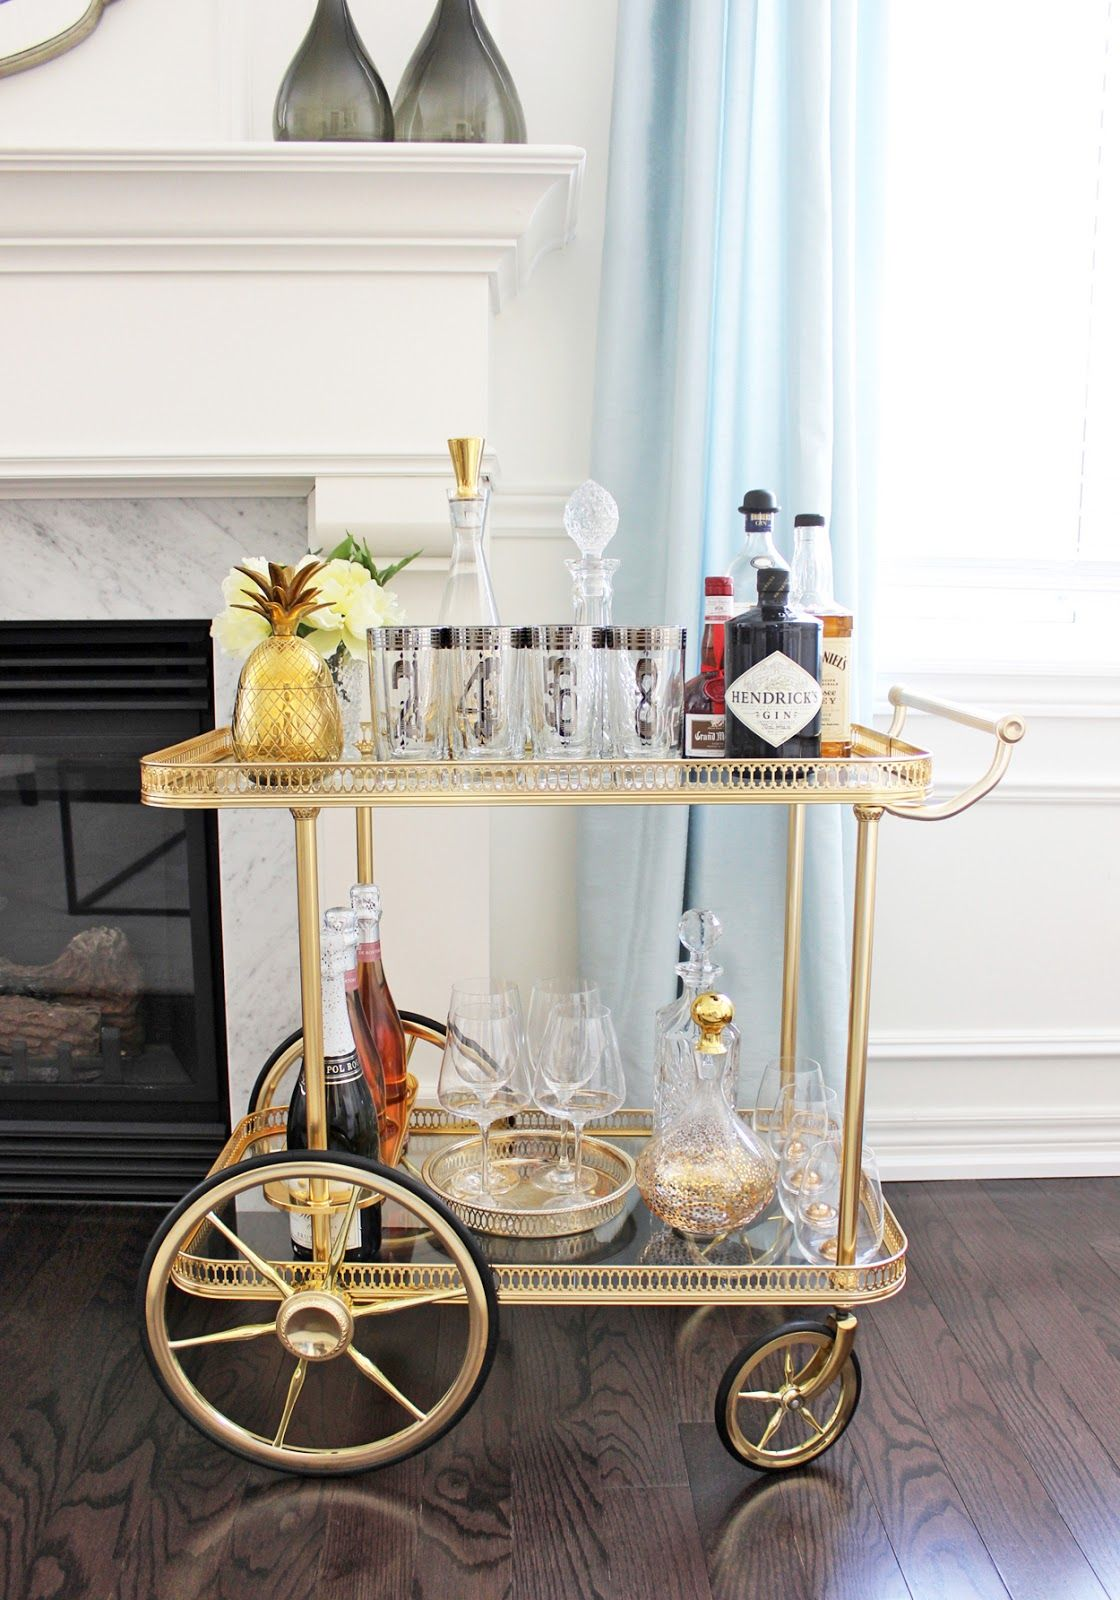 antique bar cart. AM Dolce Vita: Vintage Bar Cart Styling, Silver-rimmed Numbered Tom Collins Highball Glasses, Mid Century Mod Silver Rim Barware, Antique Q